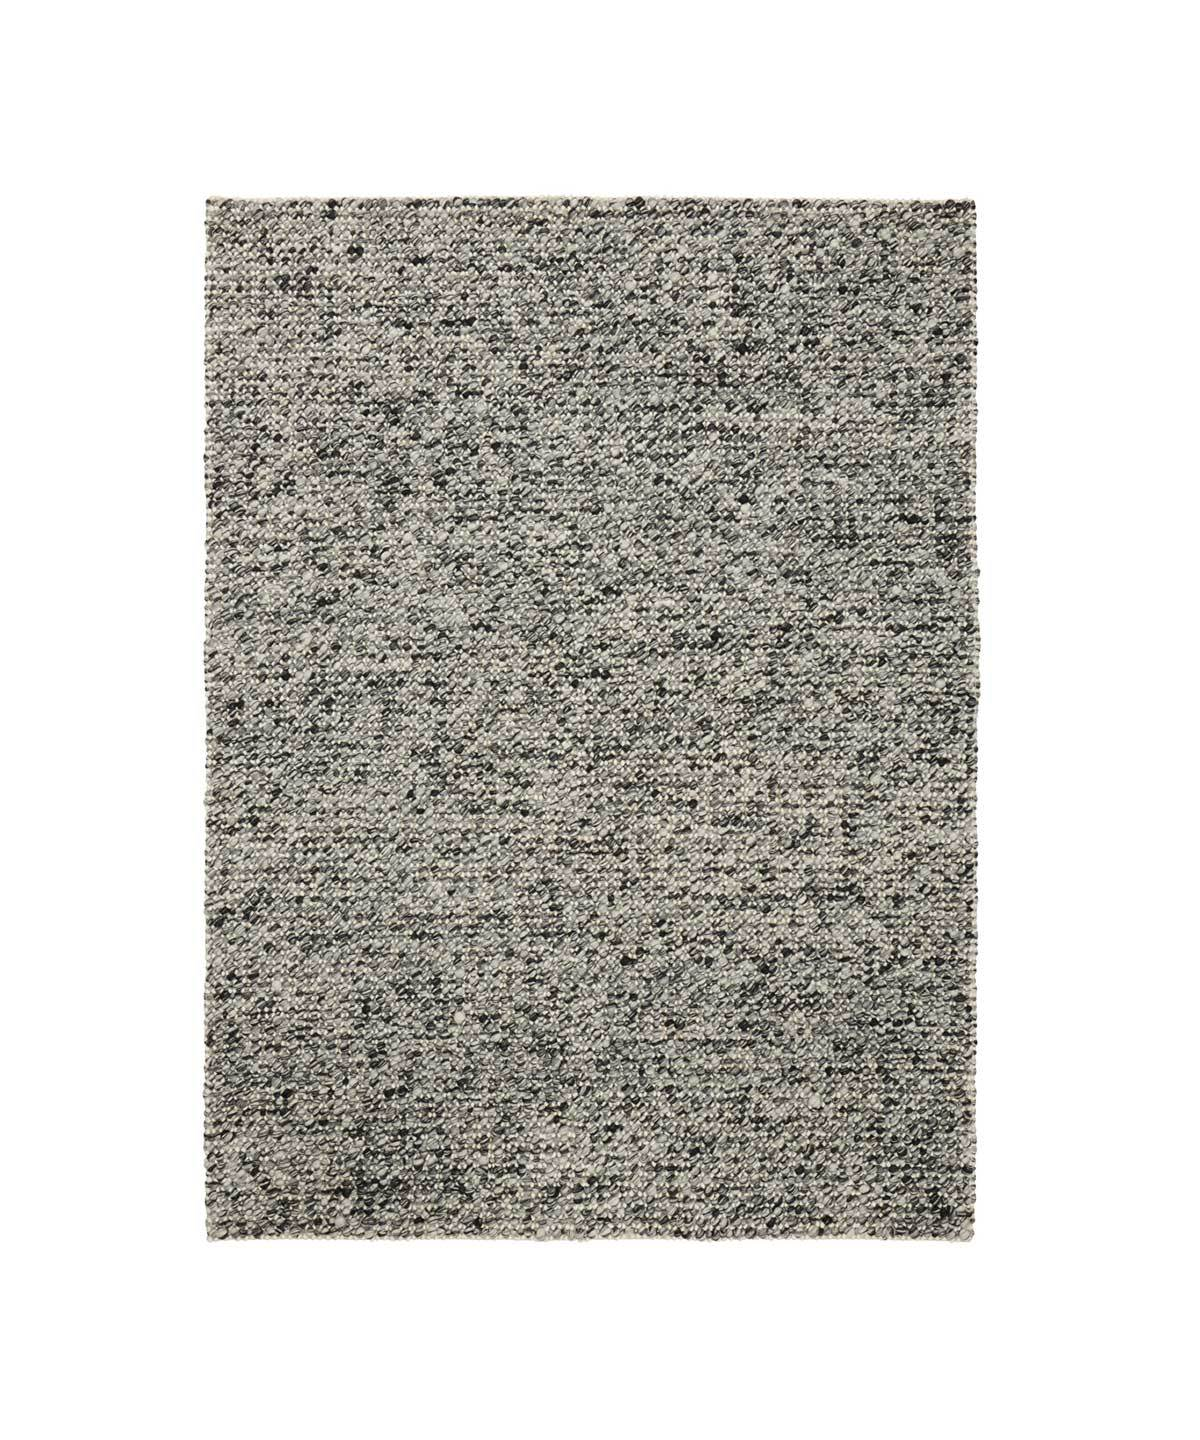 Sigri Rug in Charcoal